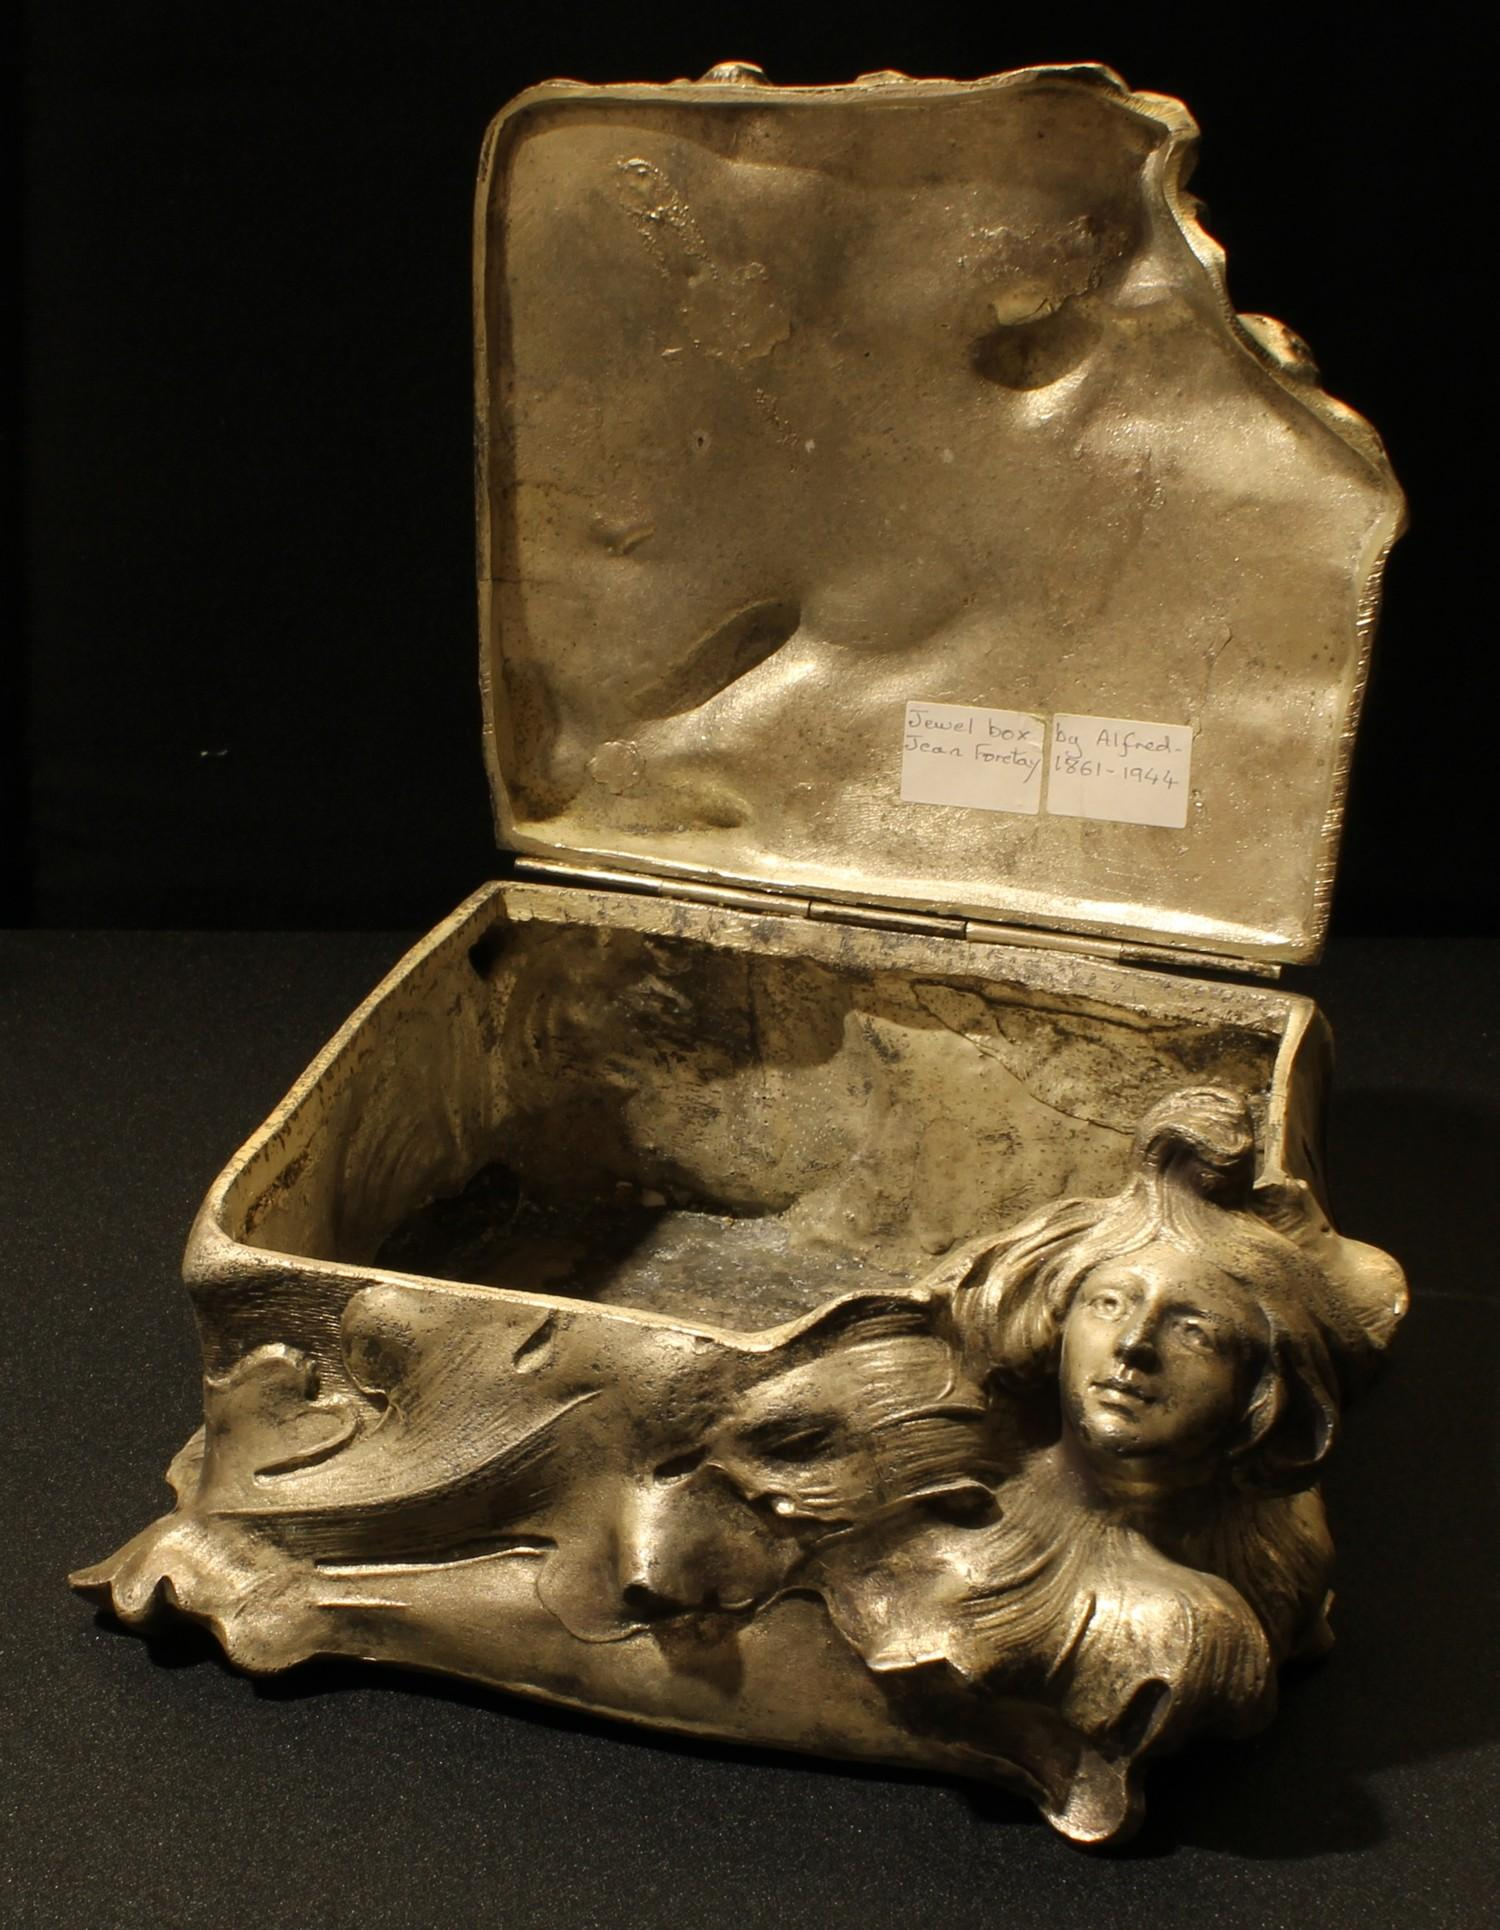 A late 19th century Art Nouveau spelter jewellery casket, after Alfred Jean Foretay, cast with the - Image 2 of 2